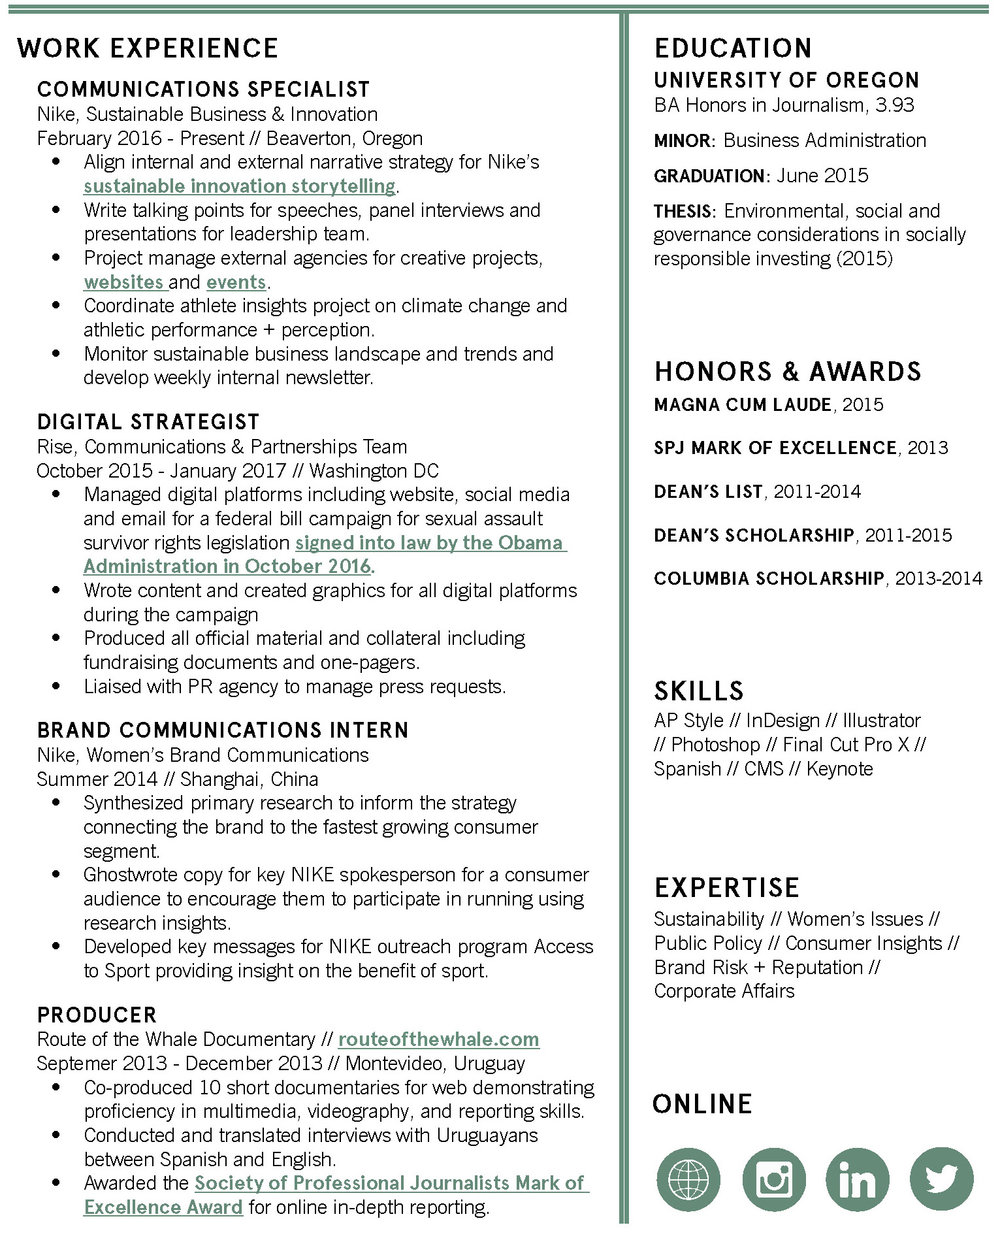 meredith st clair resume croppedjpg digital strategist resume brand strategist resume - Digital Strategist Resume